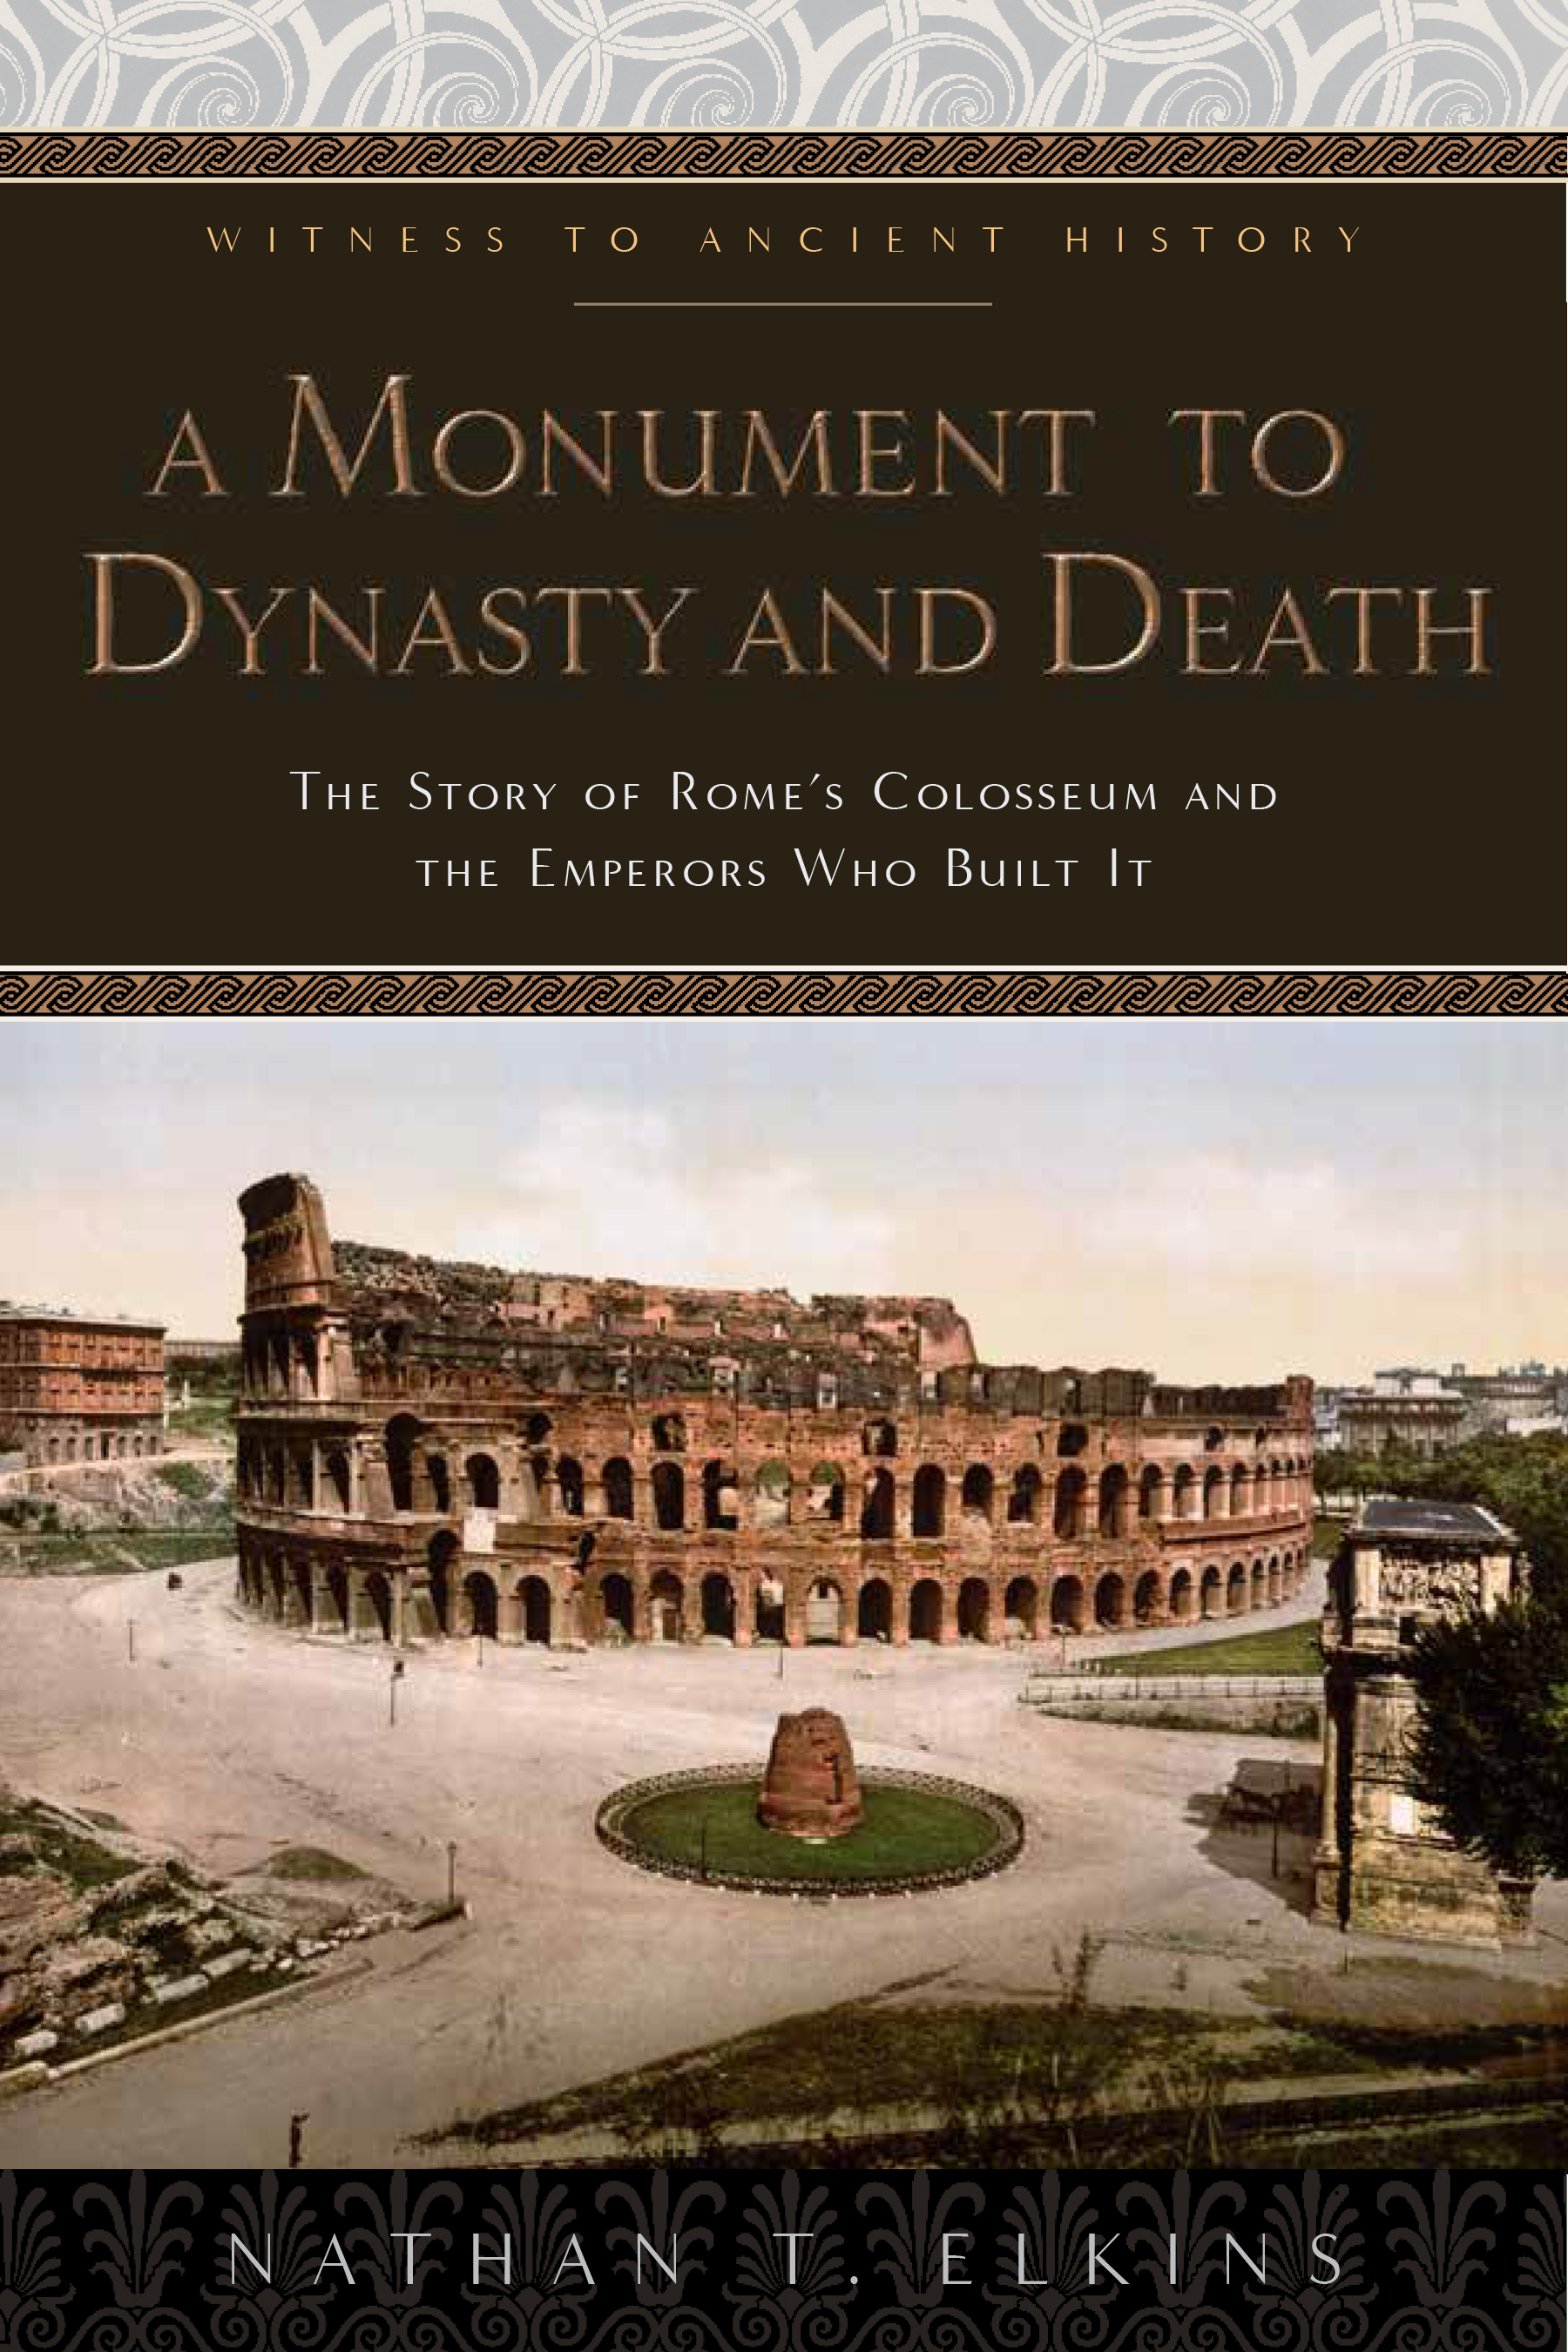 N.T. Elkins, A Monument to Dynasty and Death (John Hopkins Press, 2019)